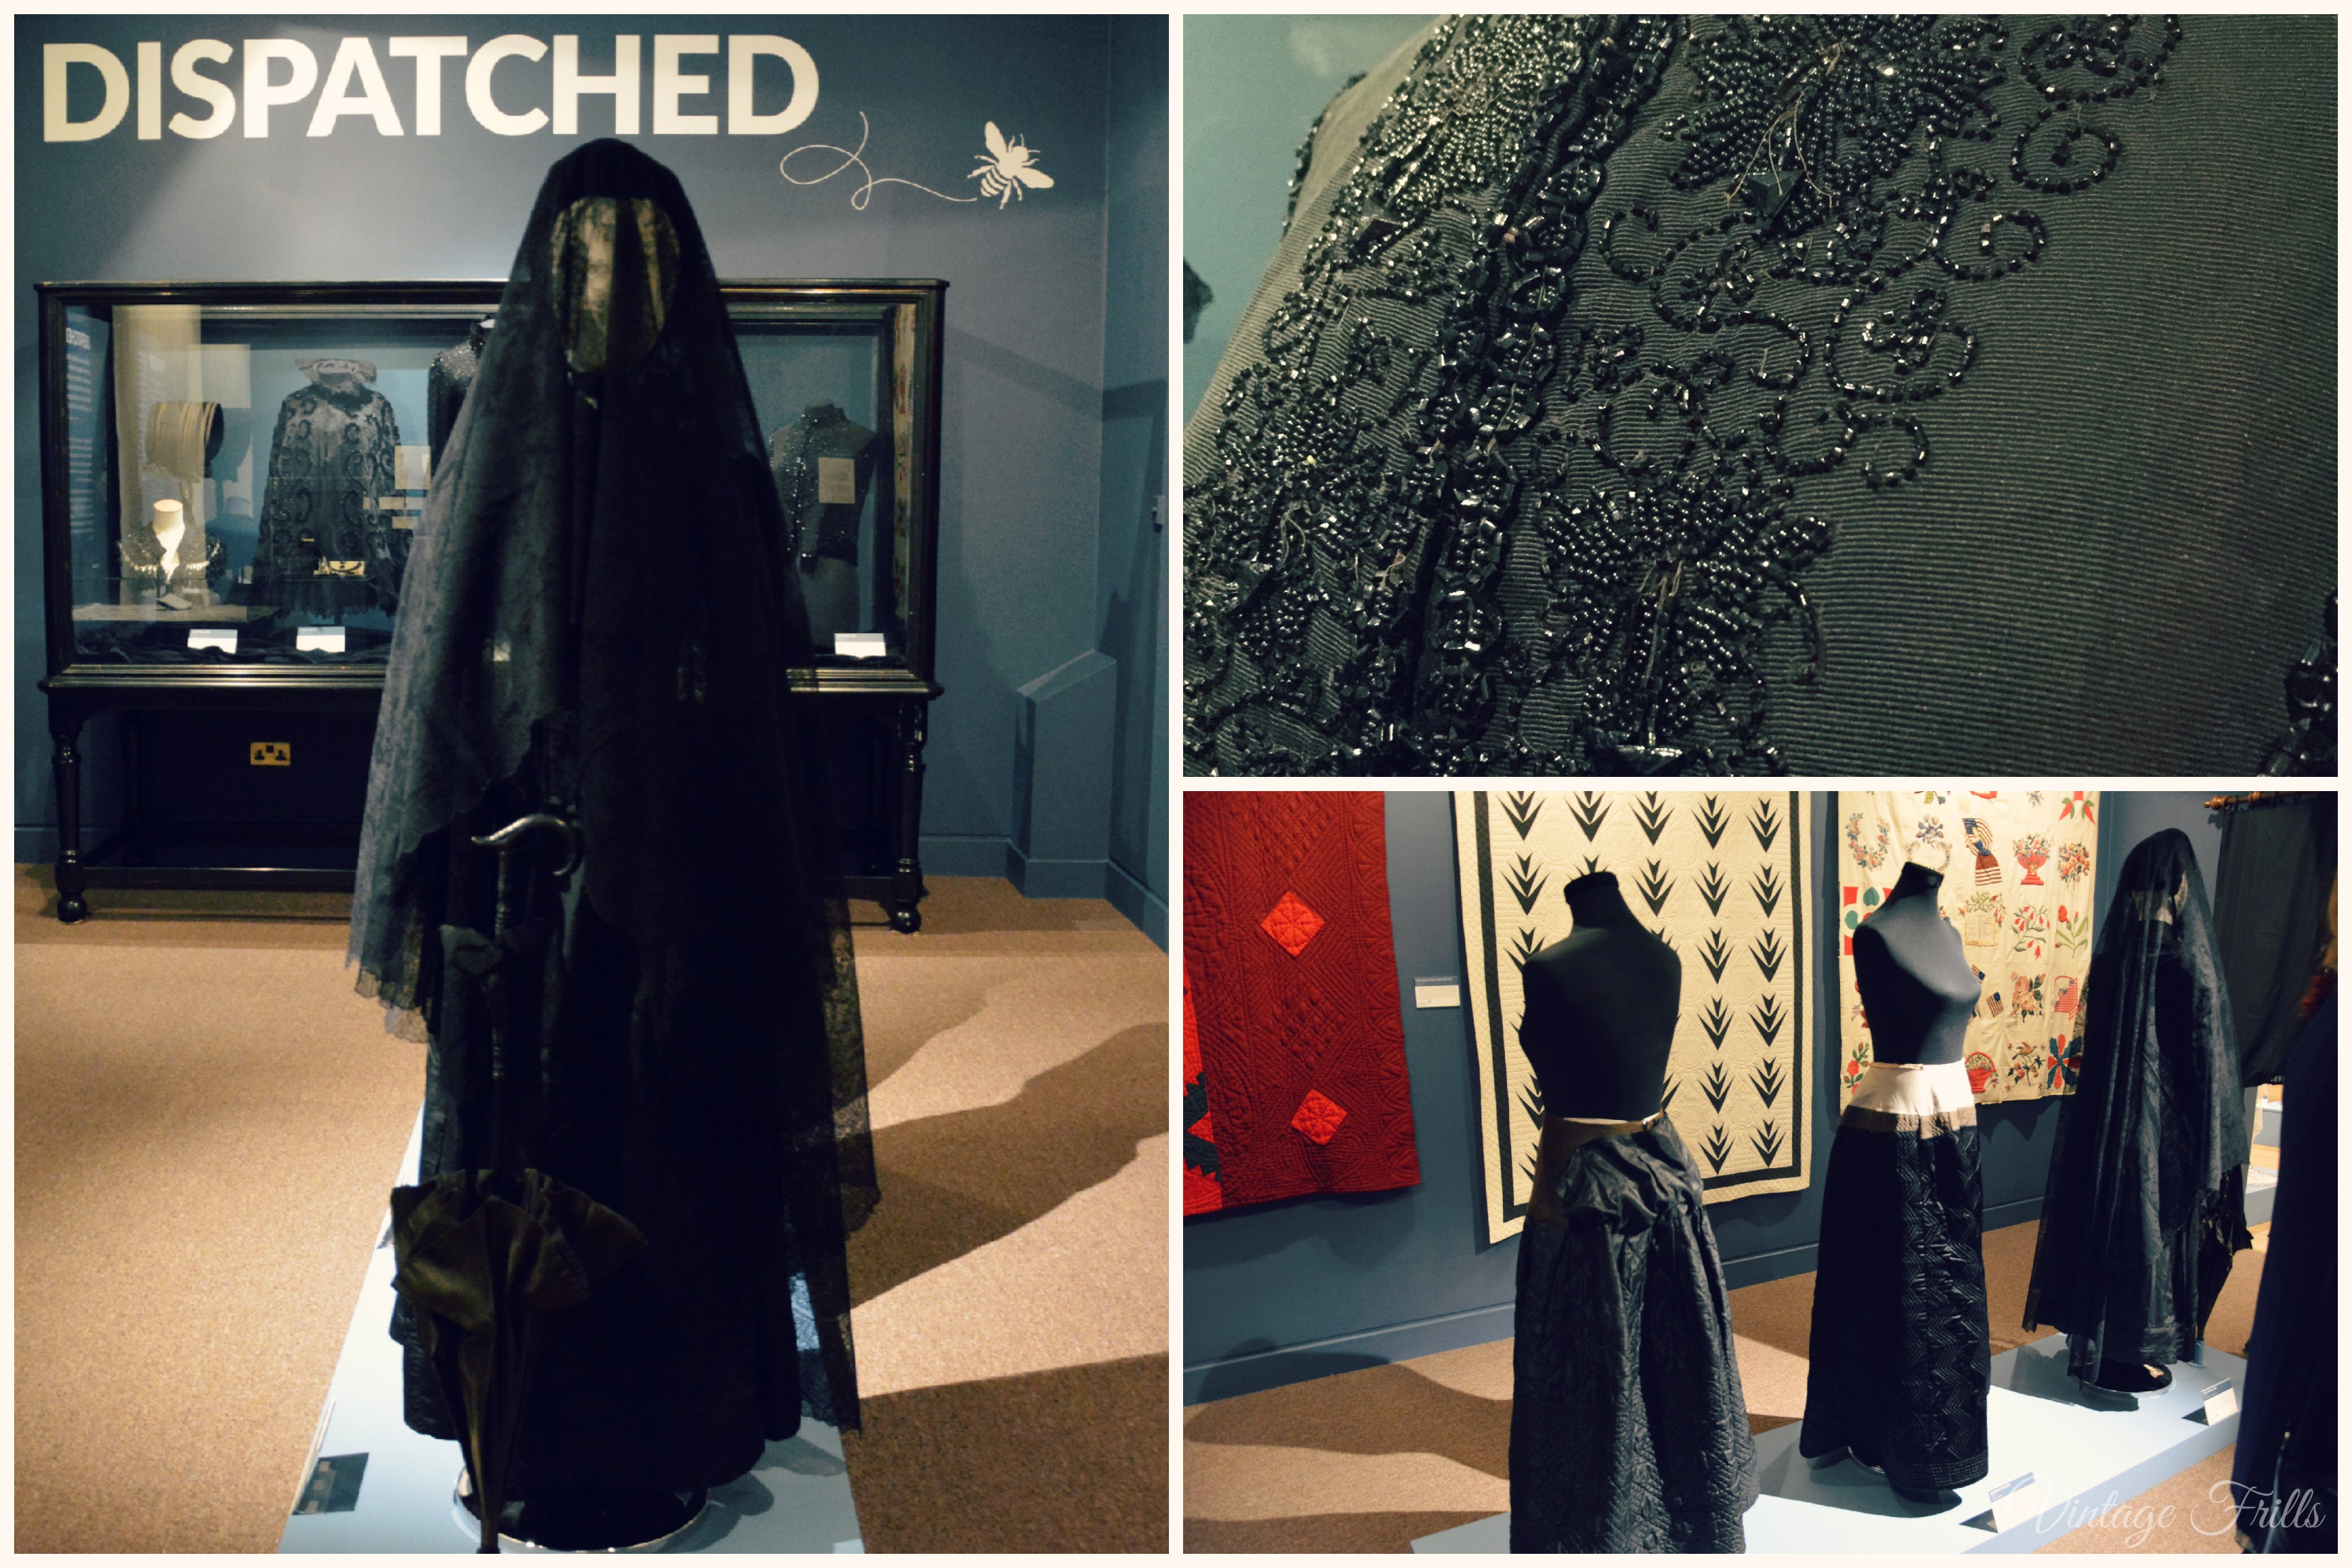 Htached Matched Dispatched Patched Mourning Clothes and Burial Skirts